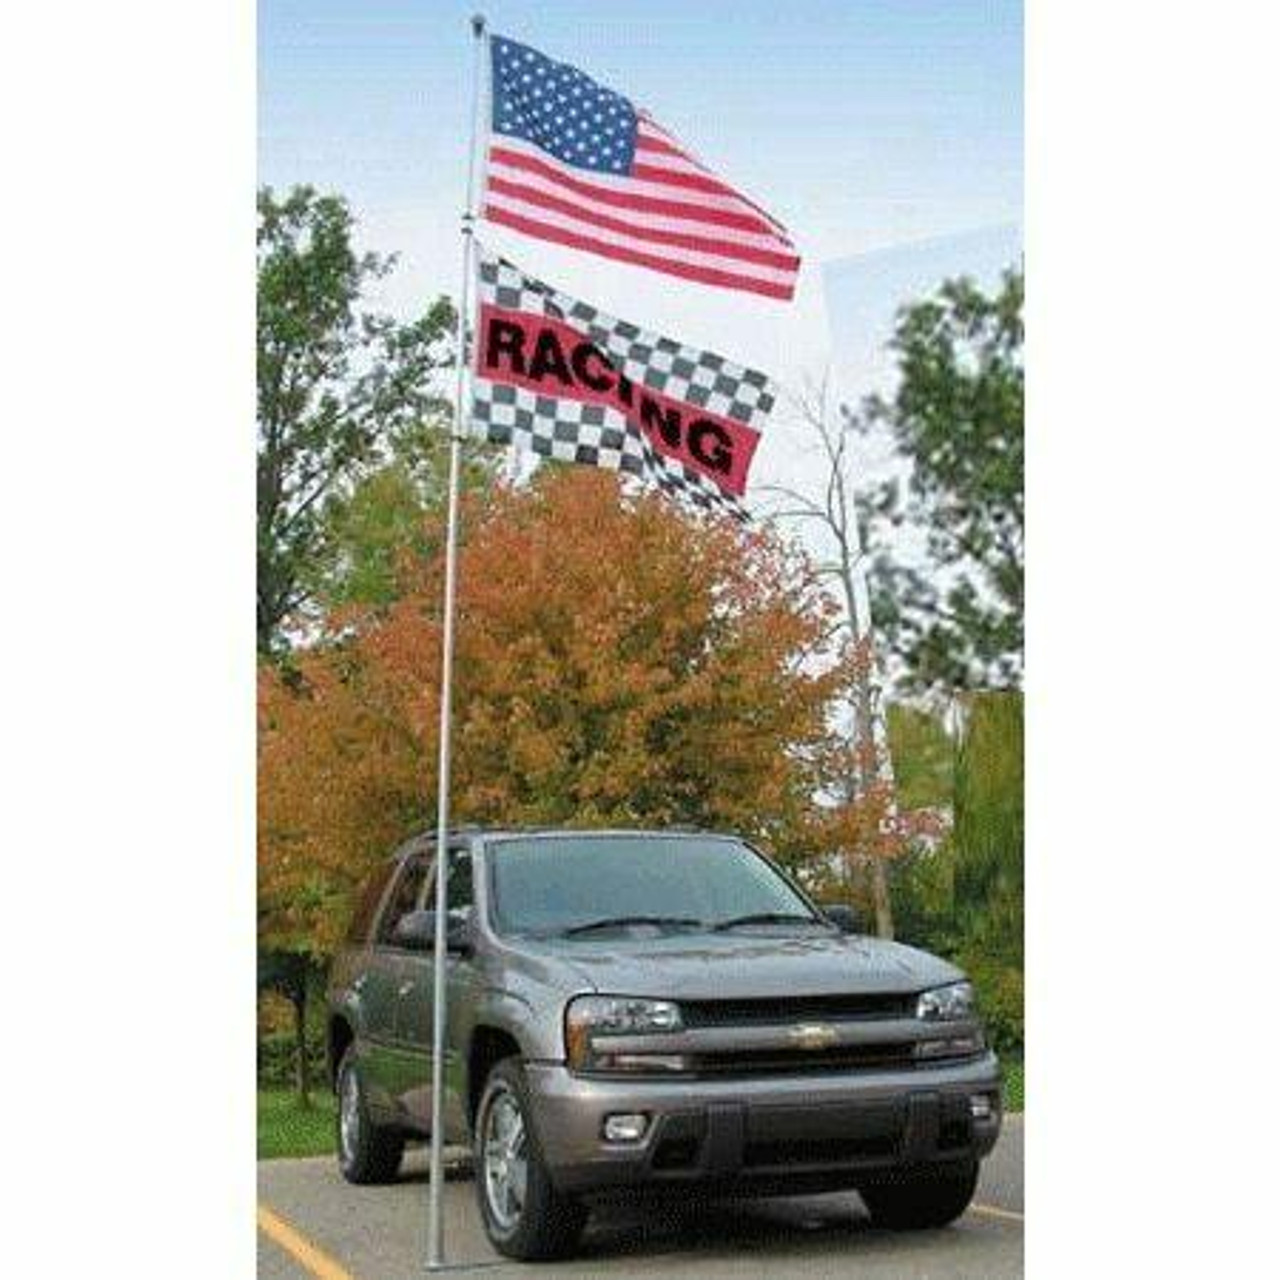 """The collapsible aluminum Flagpole To Go is attached to its flagpole ground mount or wheel stand. The stand is carefully positioned under the tire of an SUV, which firmly holds it into place. Attached to the flagpole is a red, white, and blue American flag. Hanging below that flag is a checkered black and white flag with a red stripe running horizontally across its center. In the stripe is black text reading """"RACING""""."""